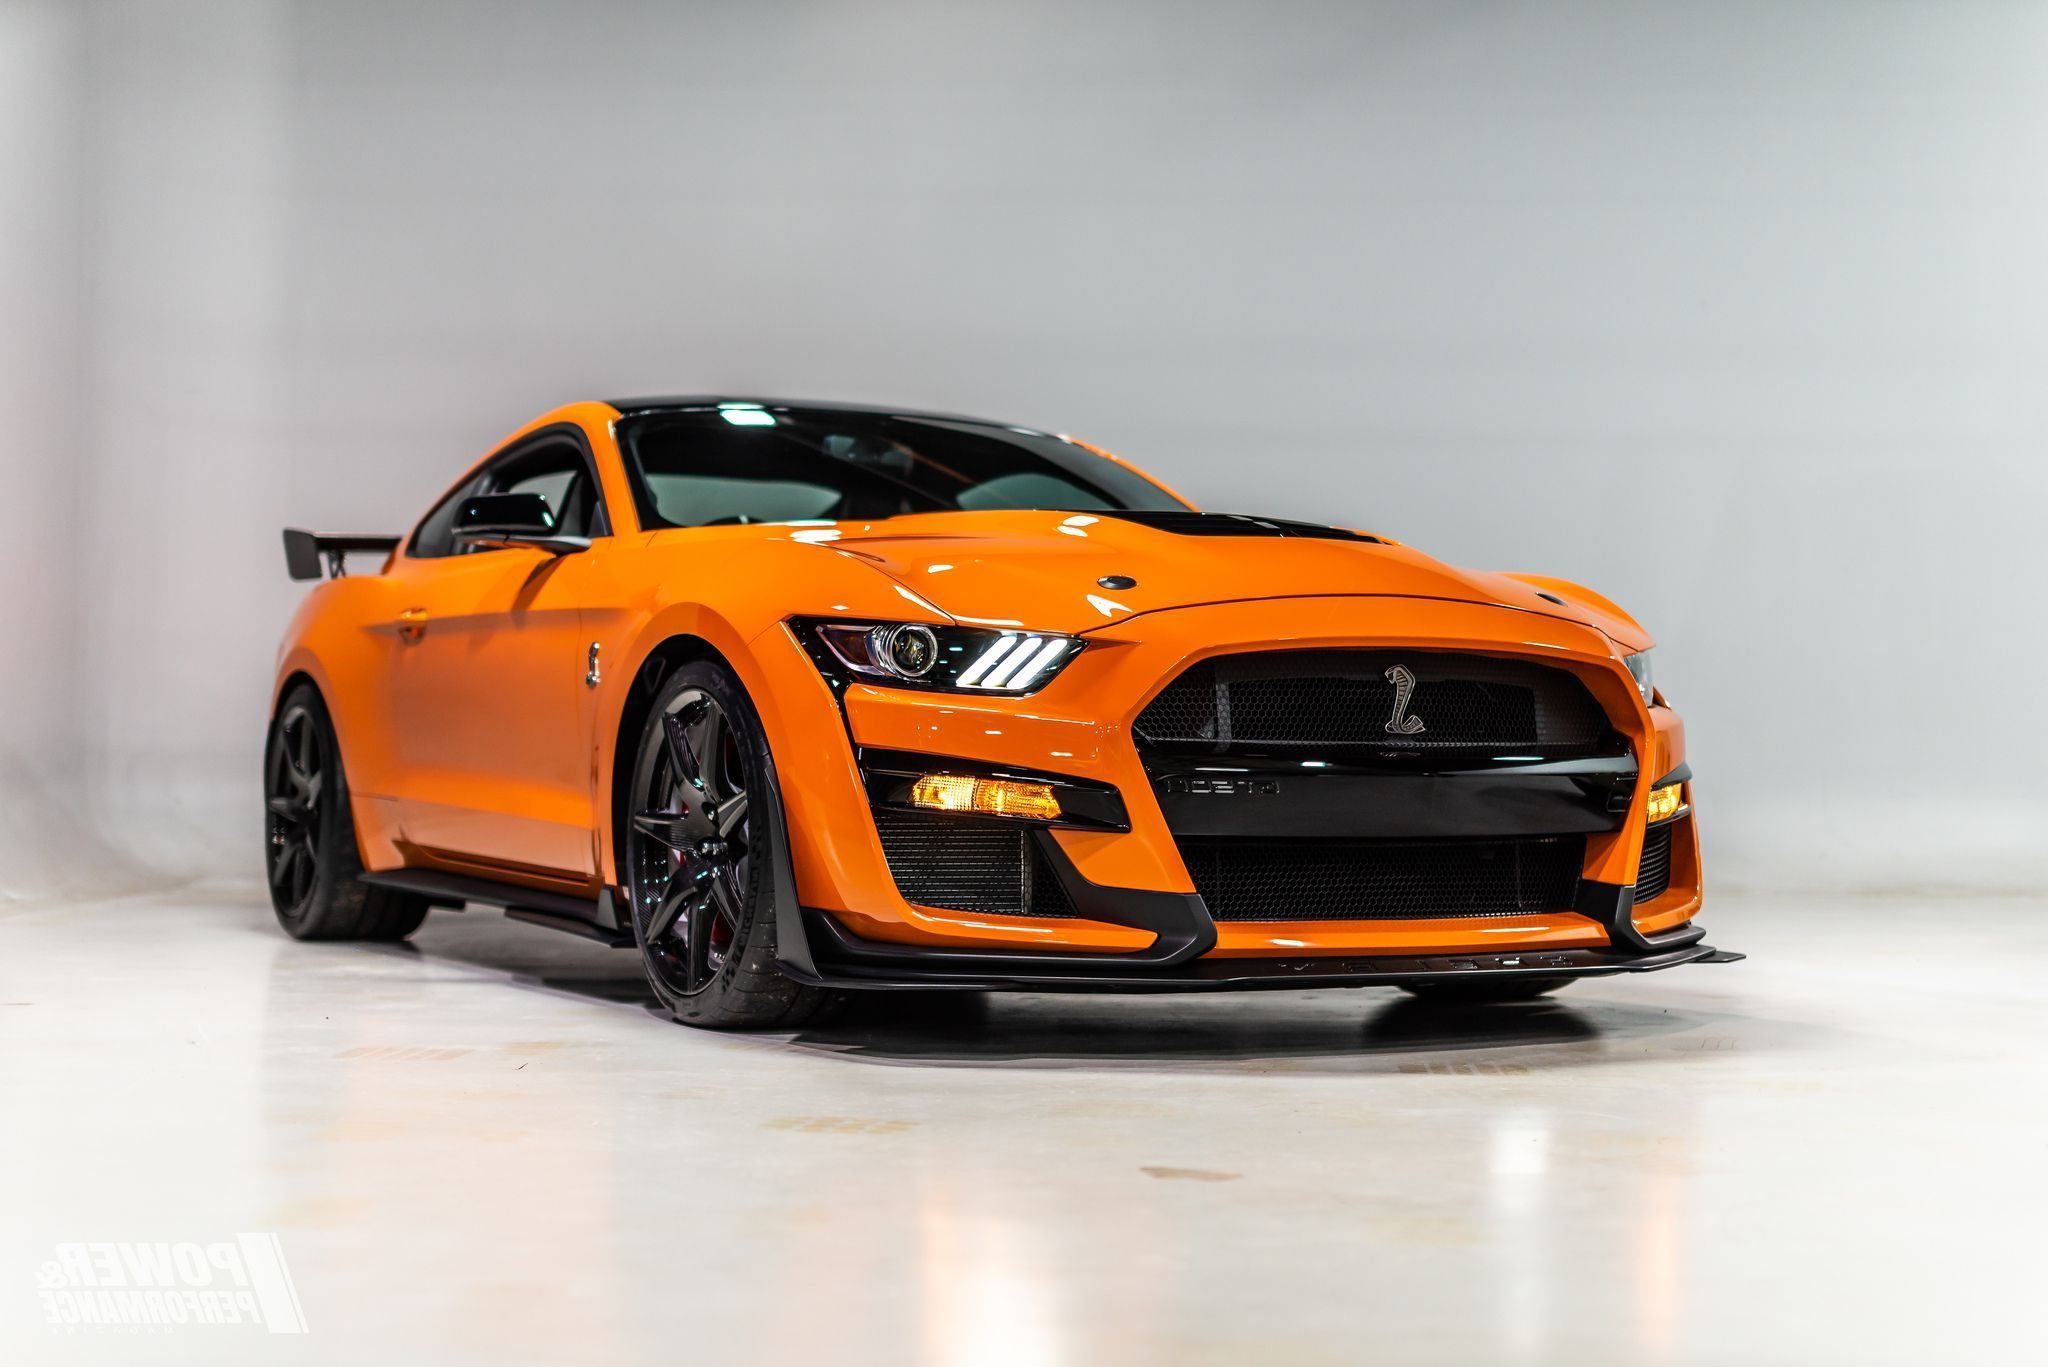 2020 Orange Ford Mustang Shelby Gt500 Ford Mustang Shelby Ford